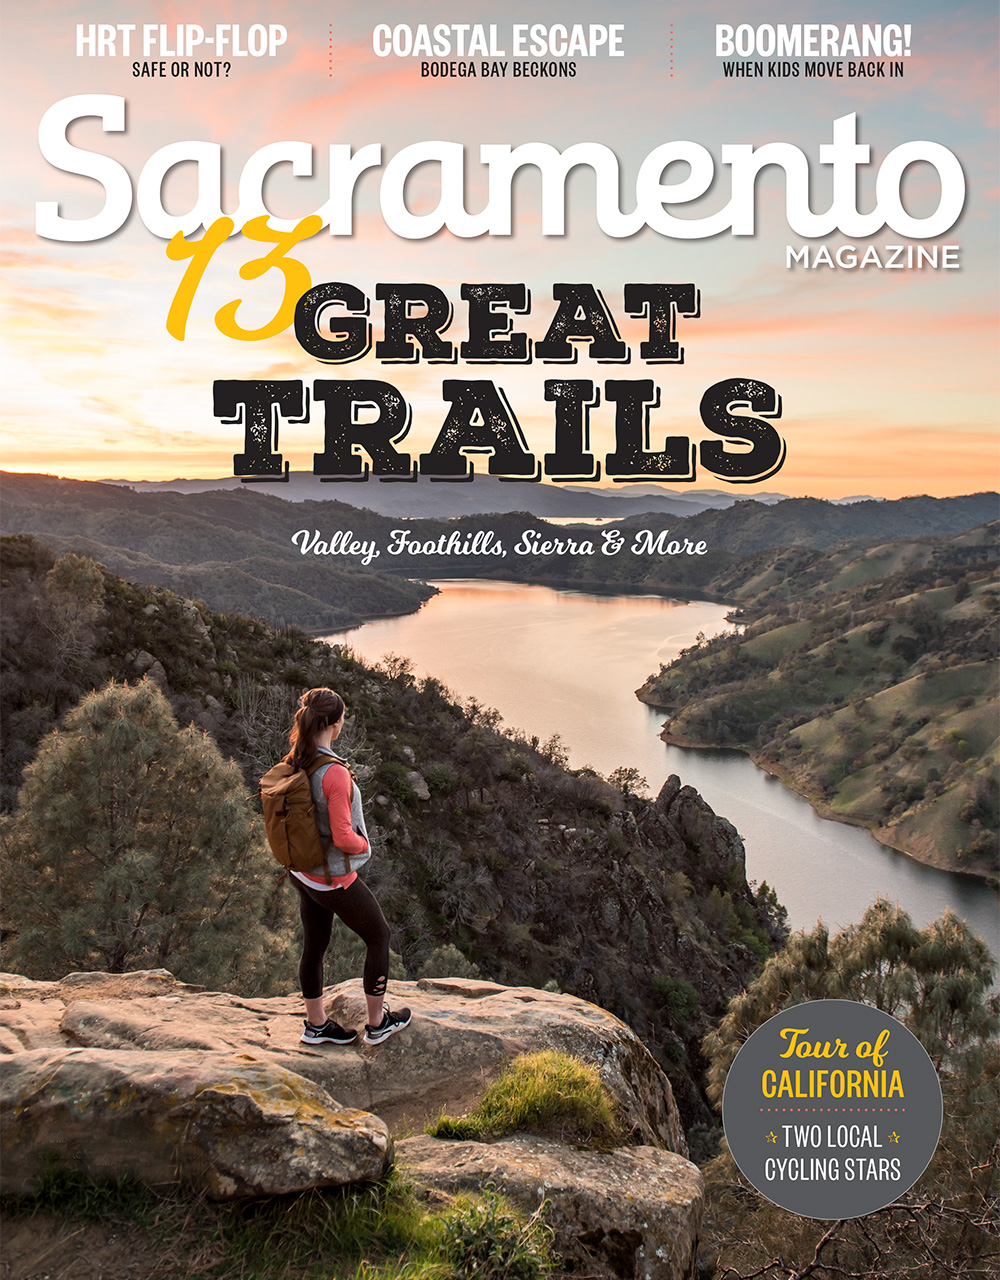 Sacramento Magazine Subscription Renewal